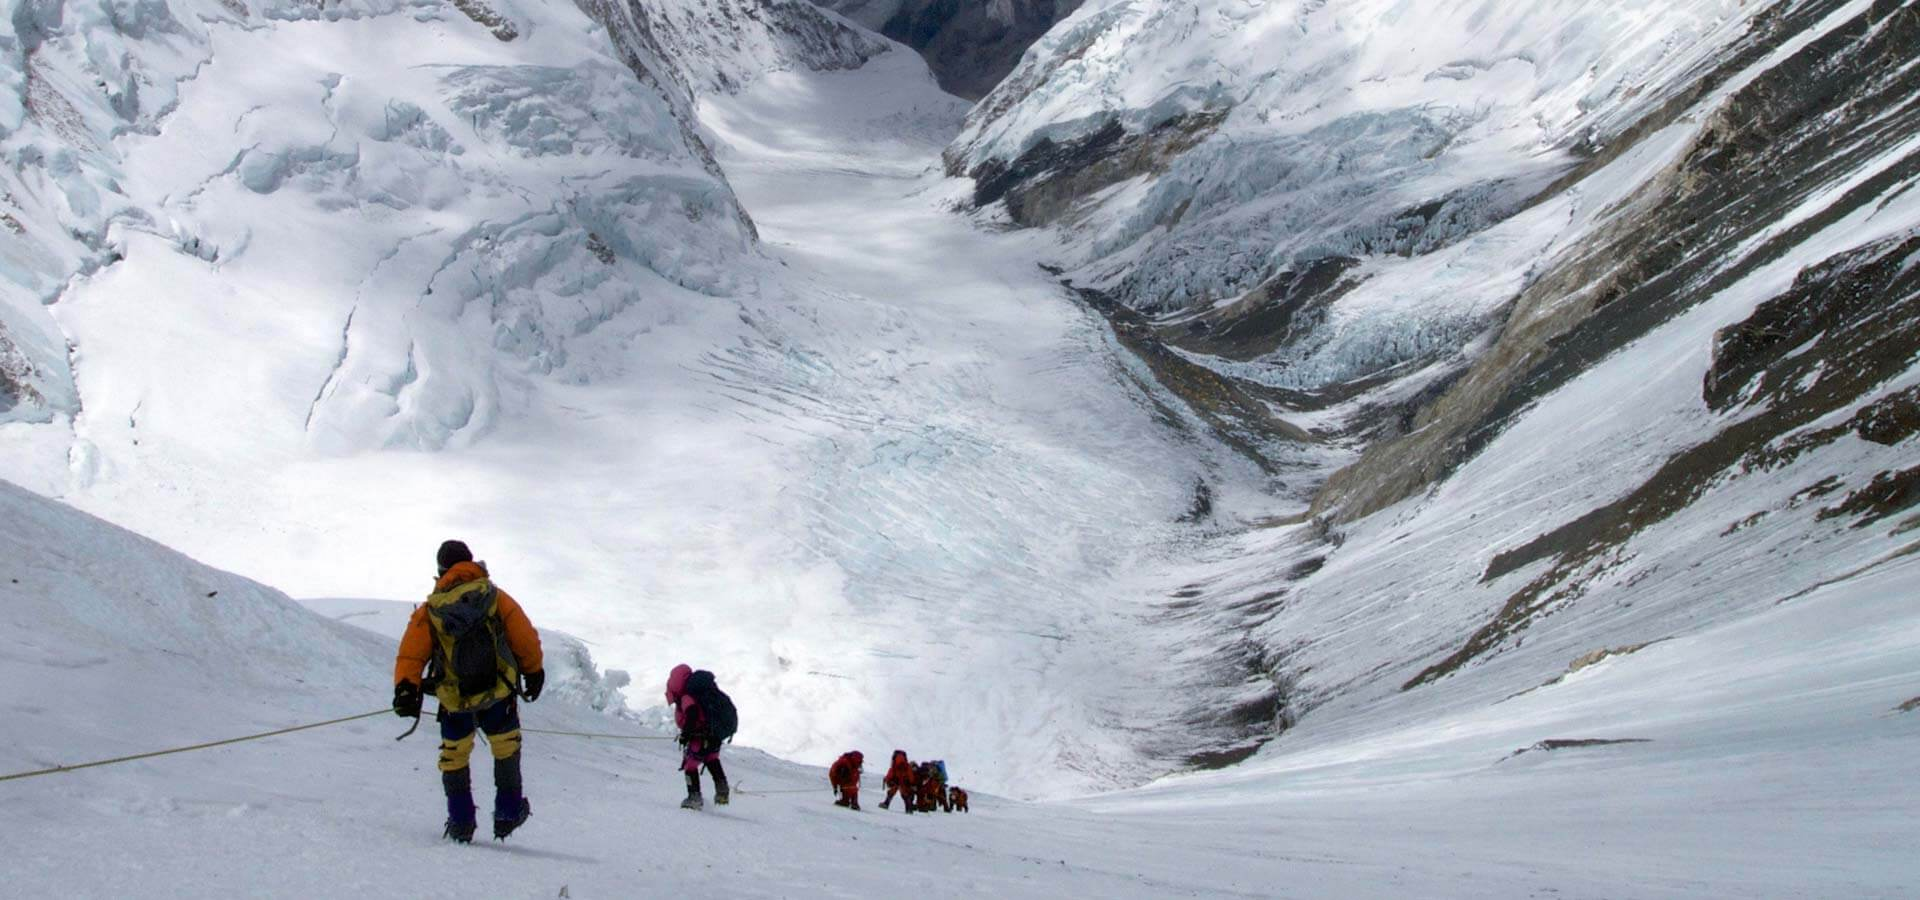 Coming down the Lhotse Face